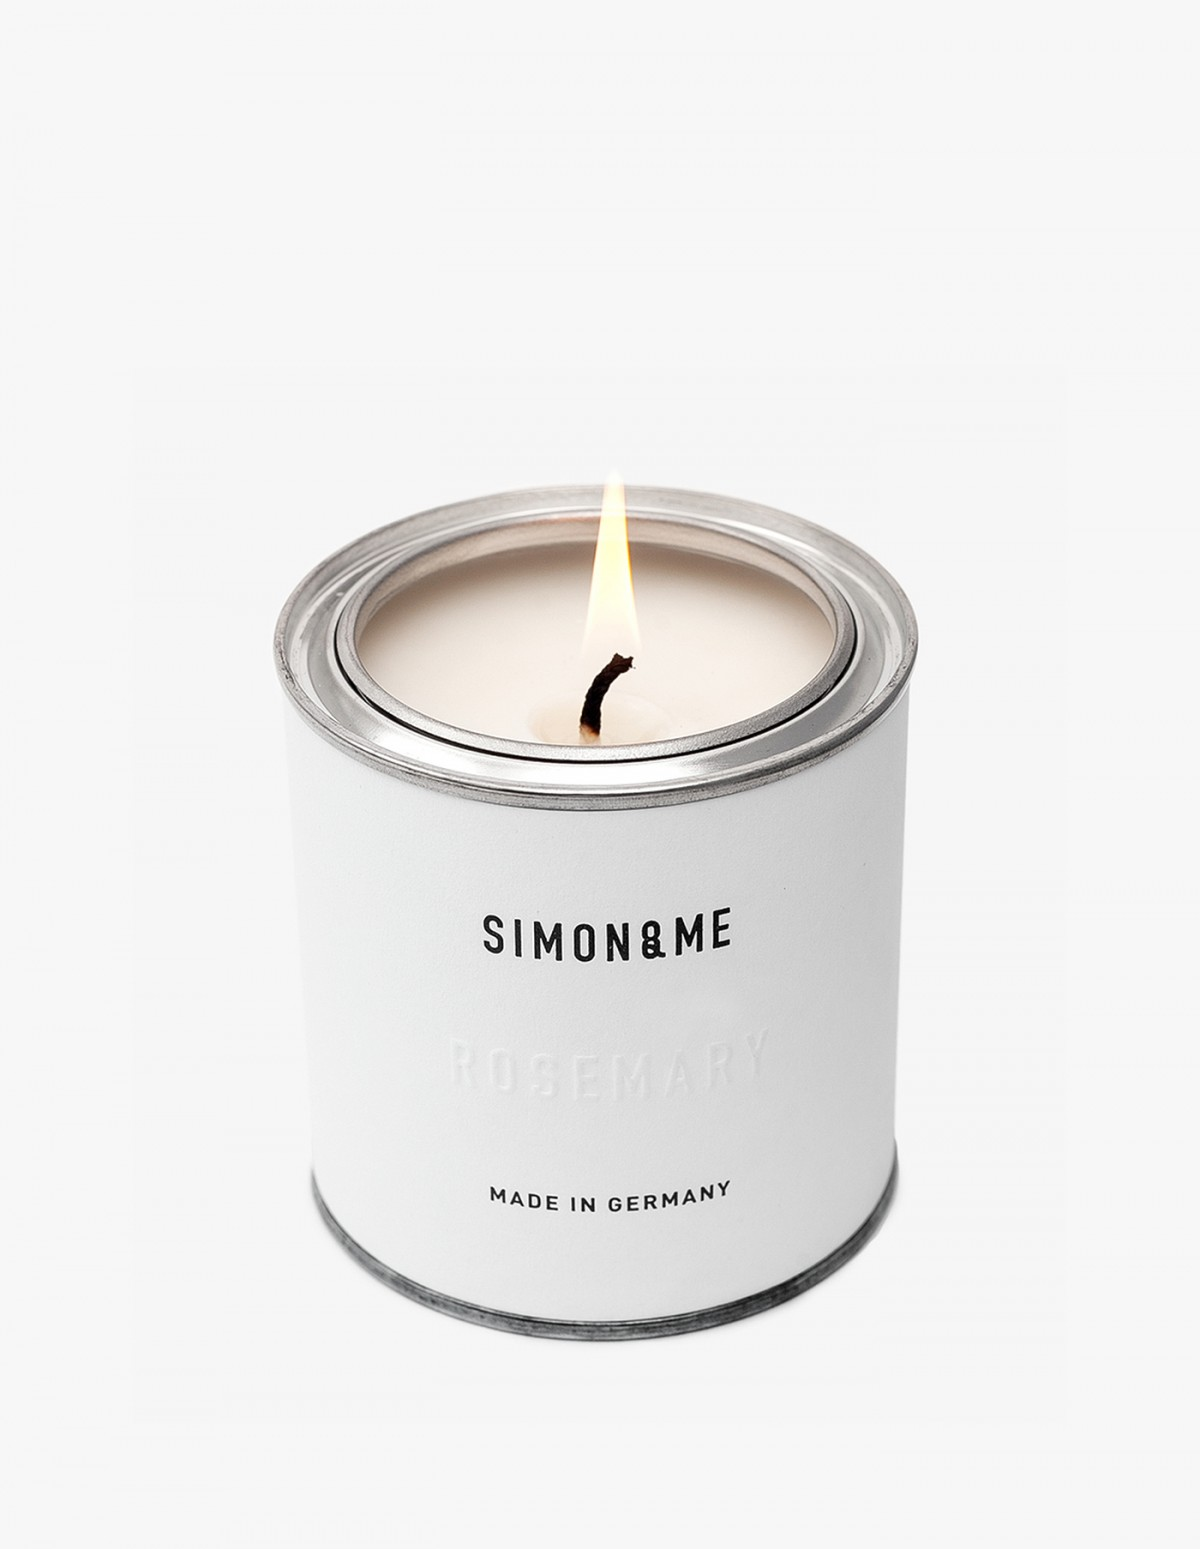 The Scented Candle in Rosemary